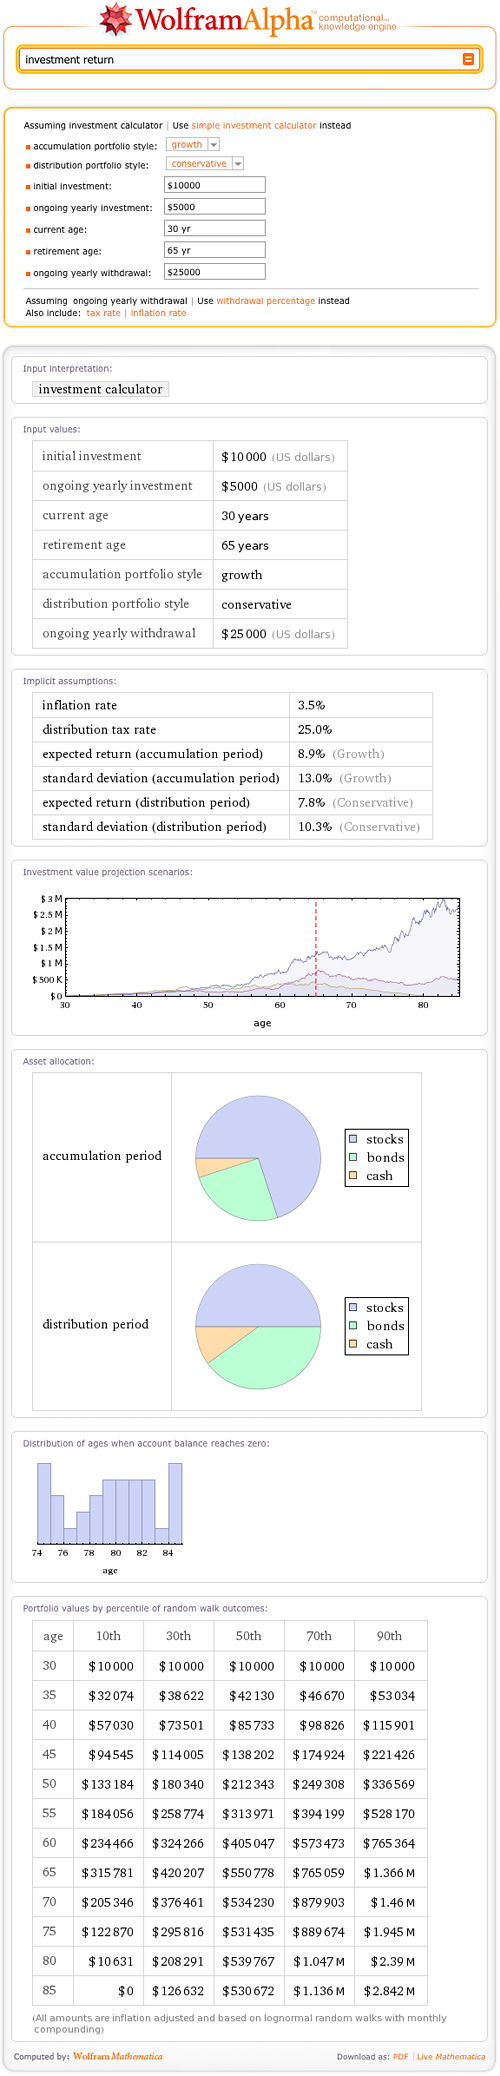 Calculating your retirement investments in Wolfram|Alpha